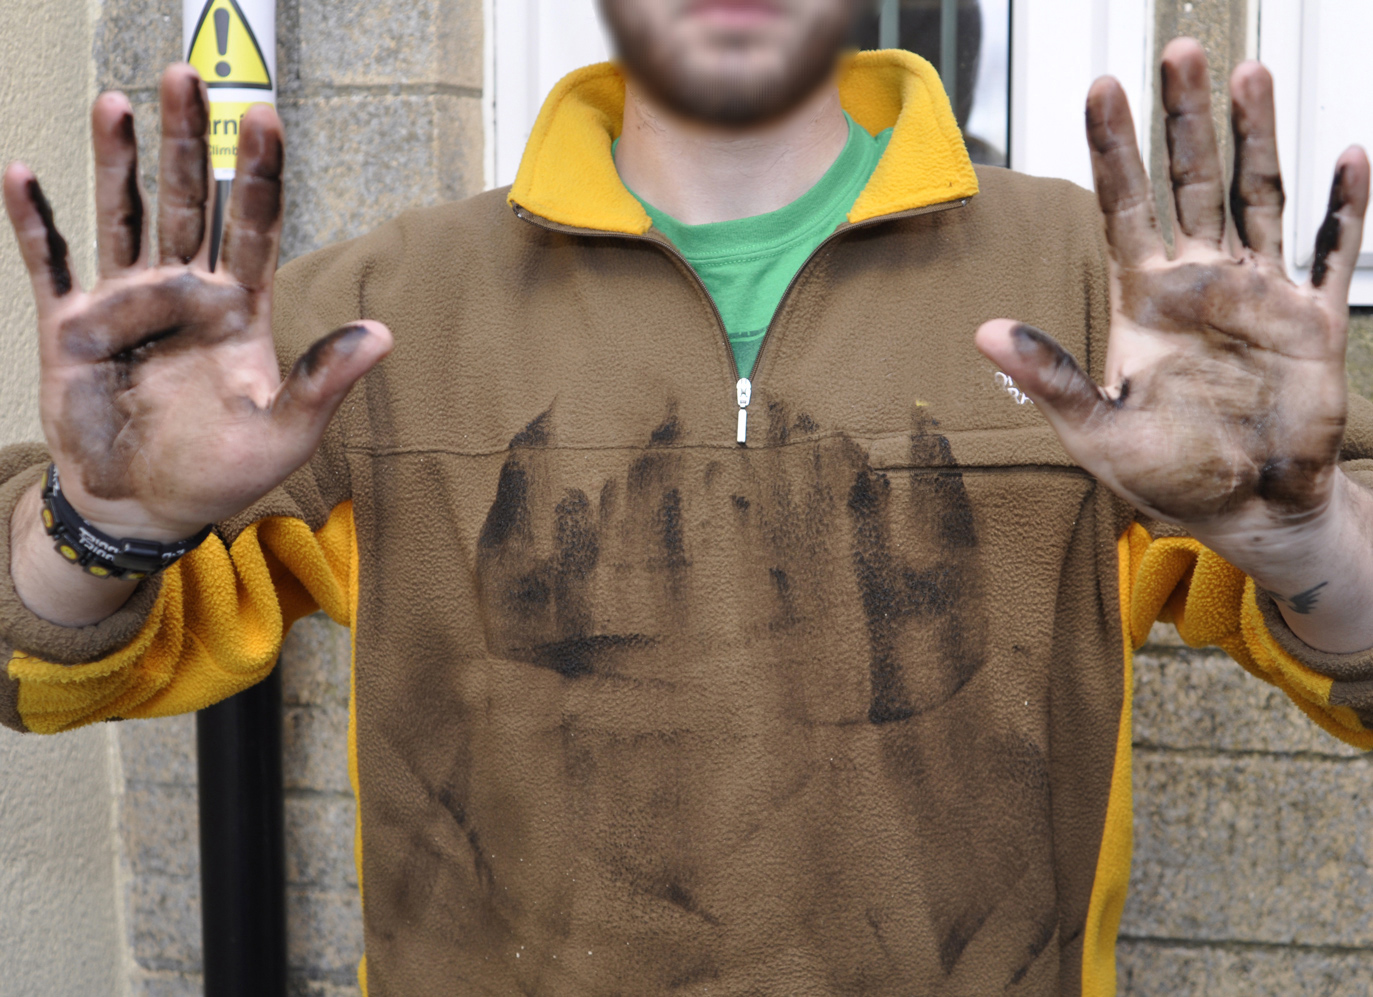 Anti Climb paint on Clothing